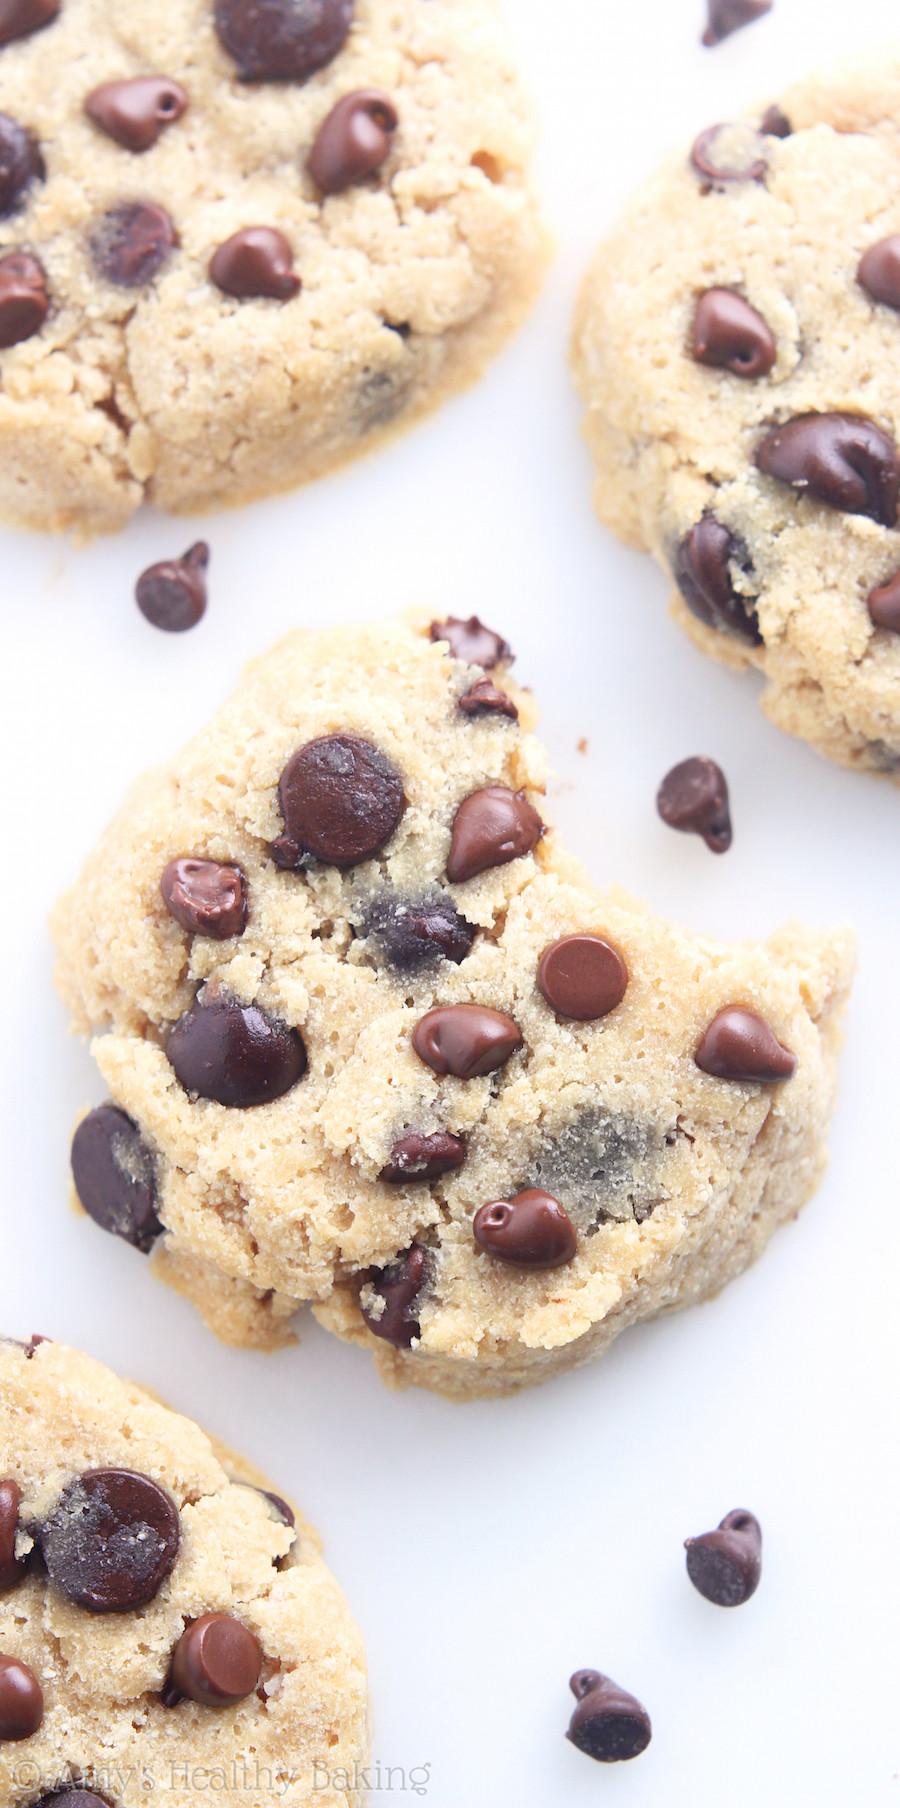 Sugar Free Chocolate Chip Cookies  Coconut Flour Chocolate Chip Cookies